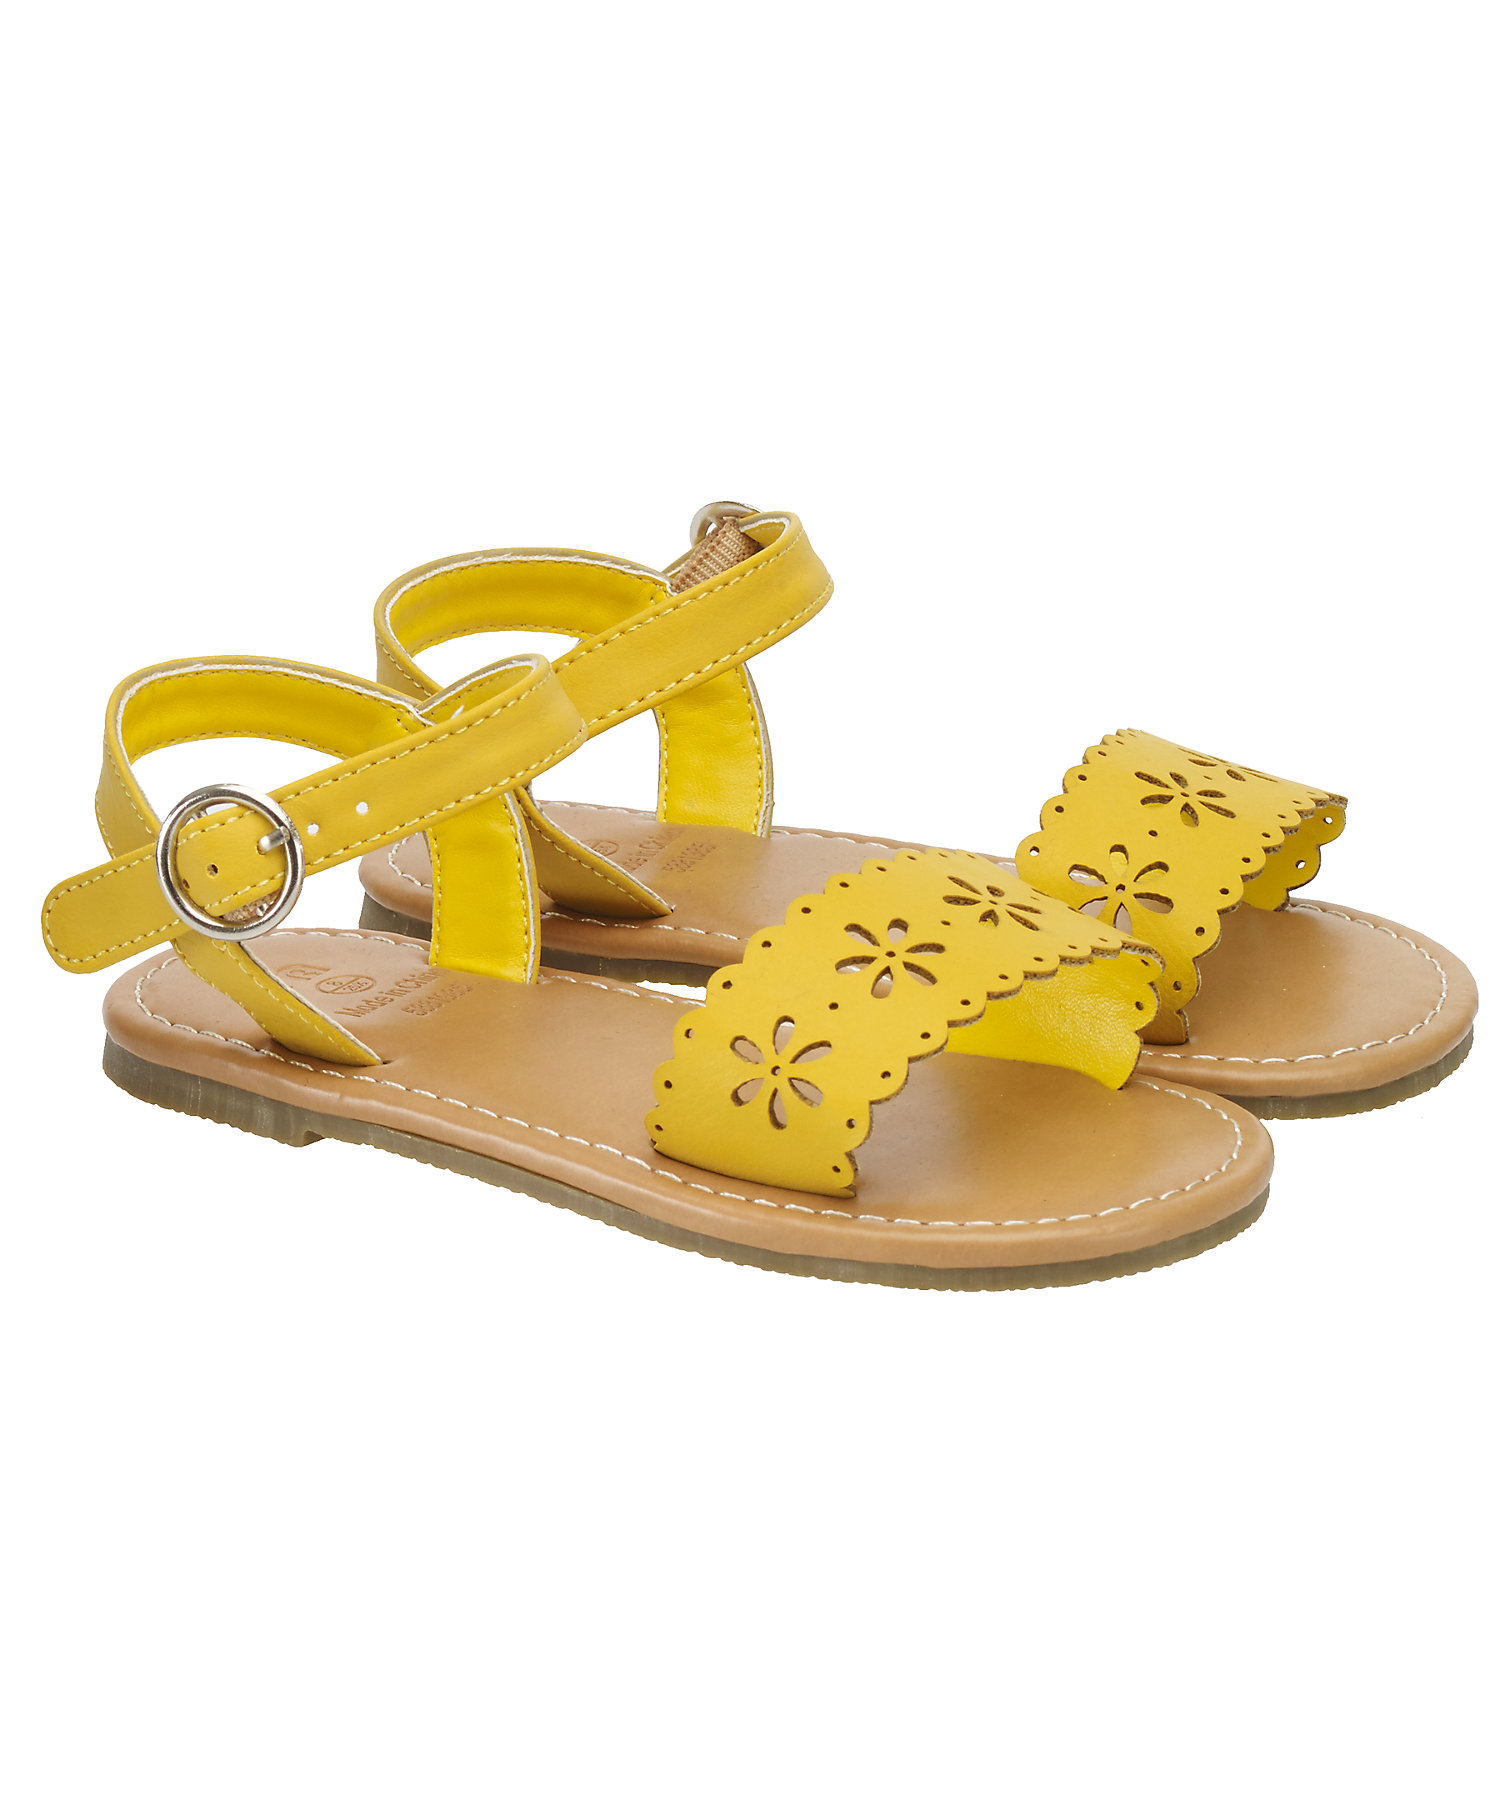 Mothercare | Girls Sandals Cut Out Design - Yellow